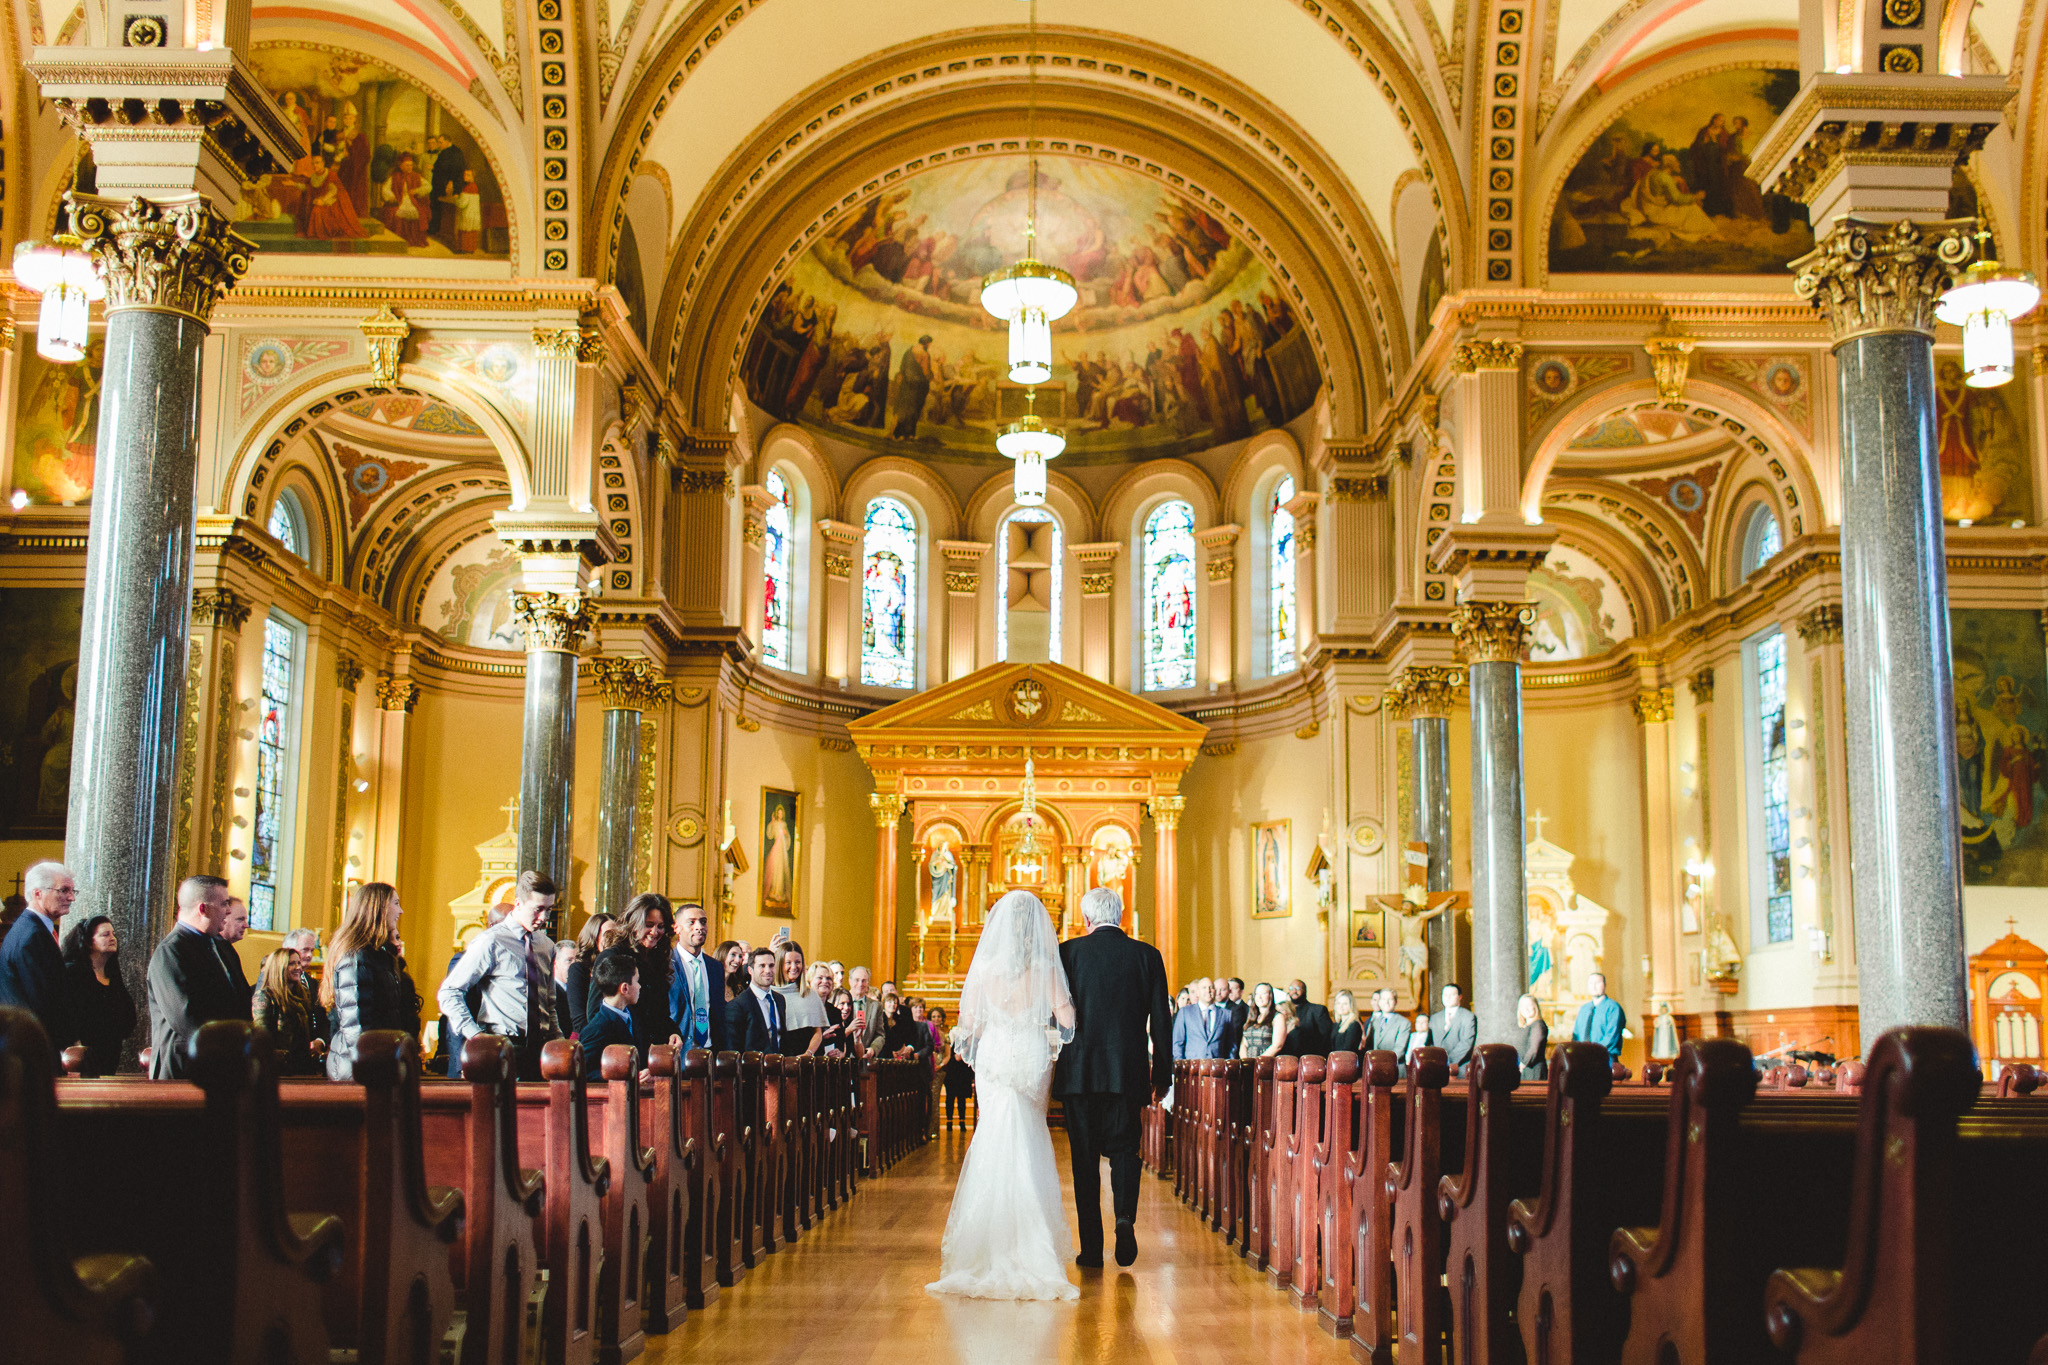 Chicago Wedding Chicago Wedding Photographer Margaret Buttweiler Photography Bride and Father down the Isle Church Chicago Church Photo Web Res 2 (1 of 1).jpg